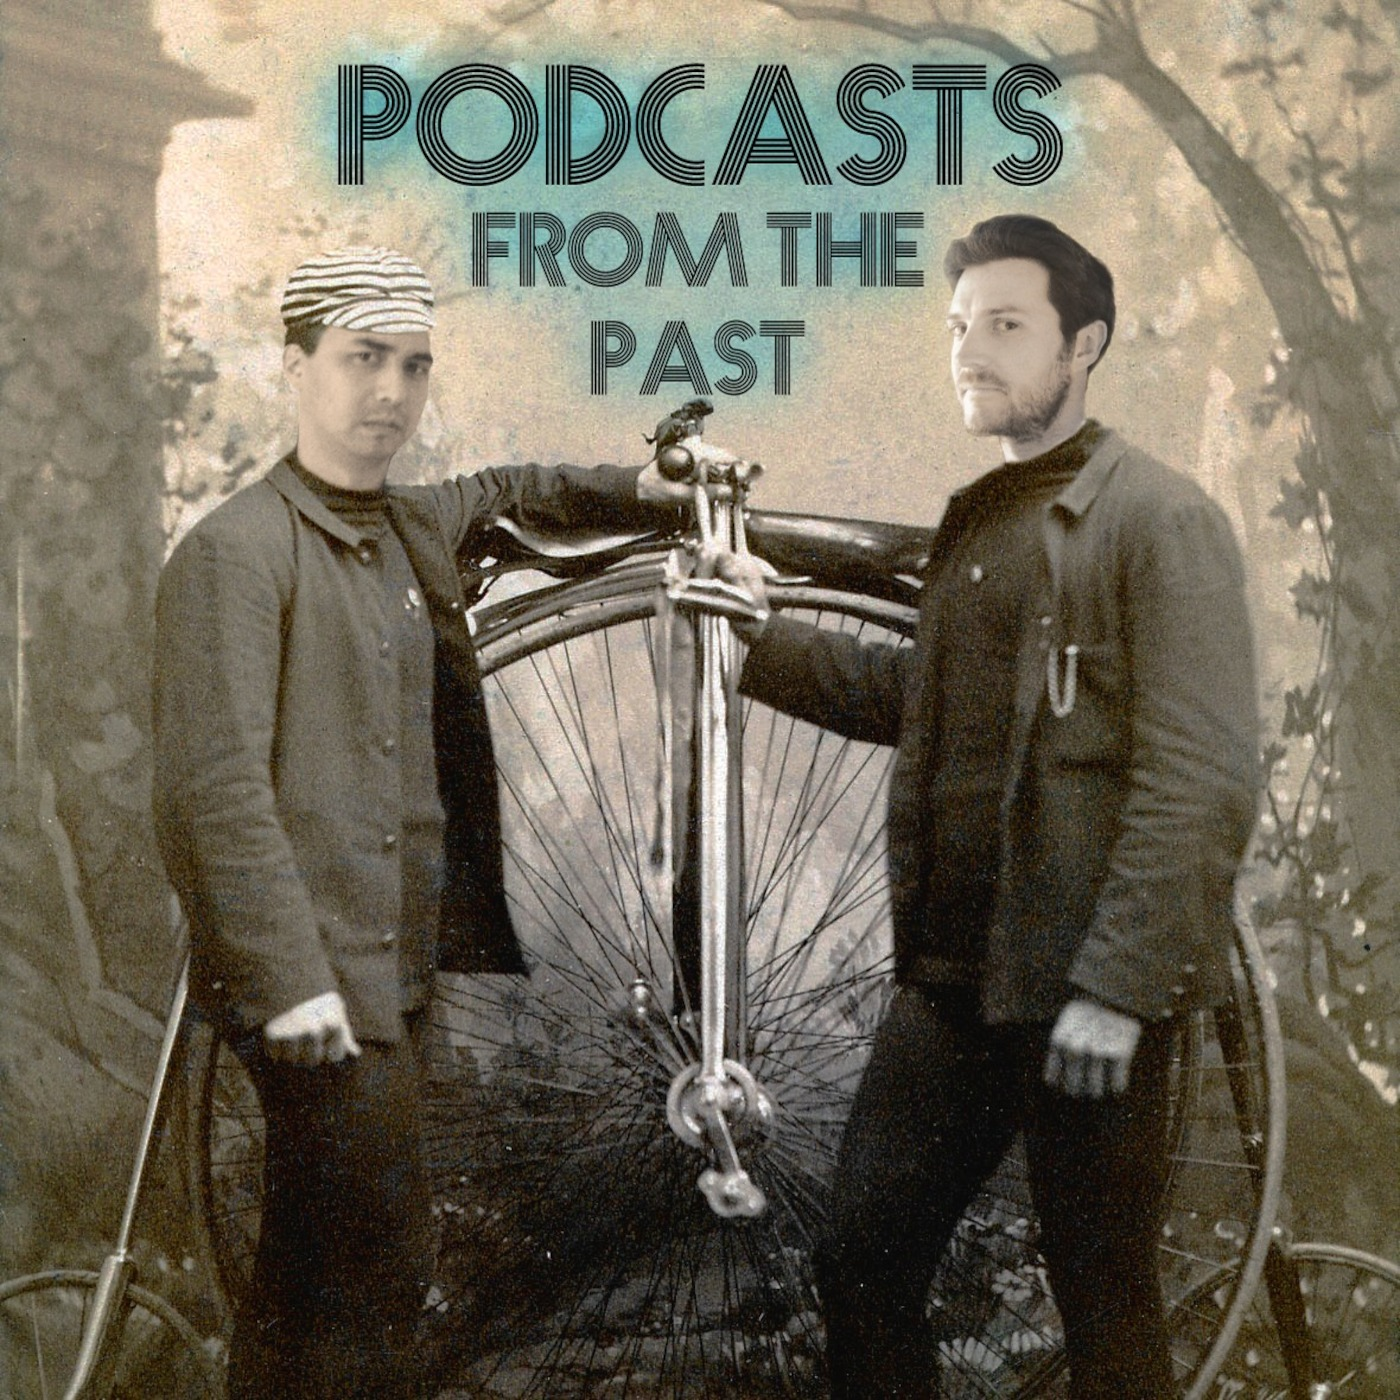 Podcasts From the Past